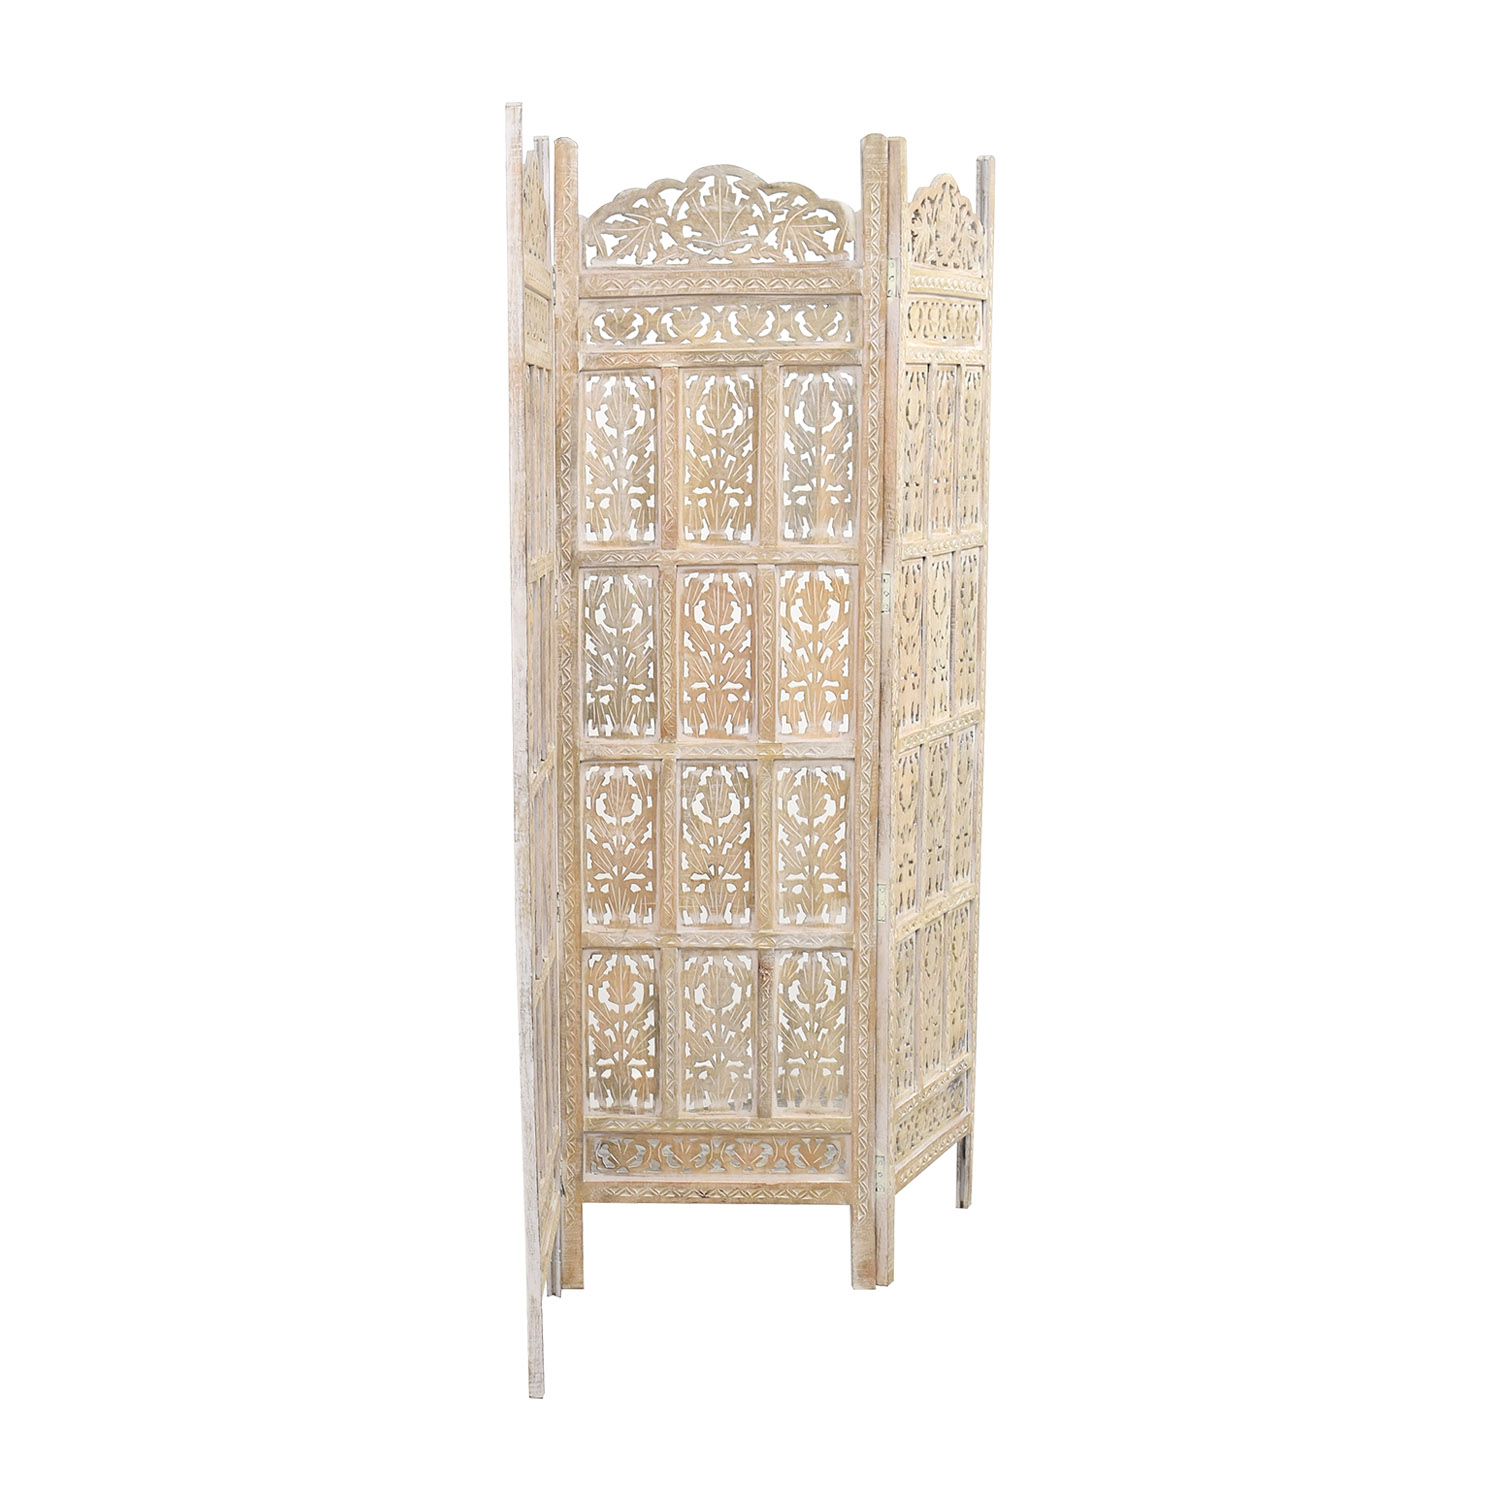 Ornate Screen Divider price